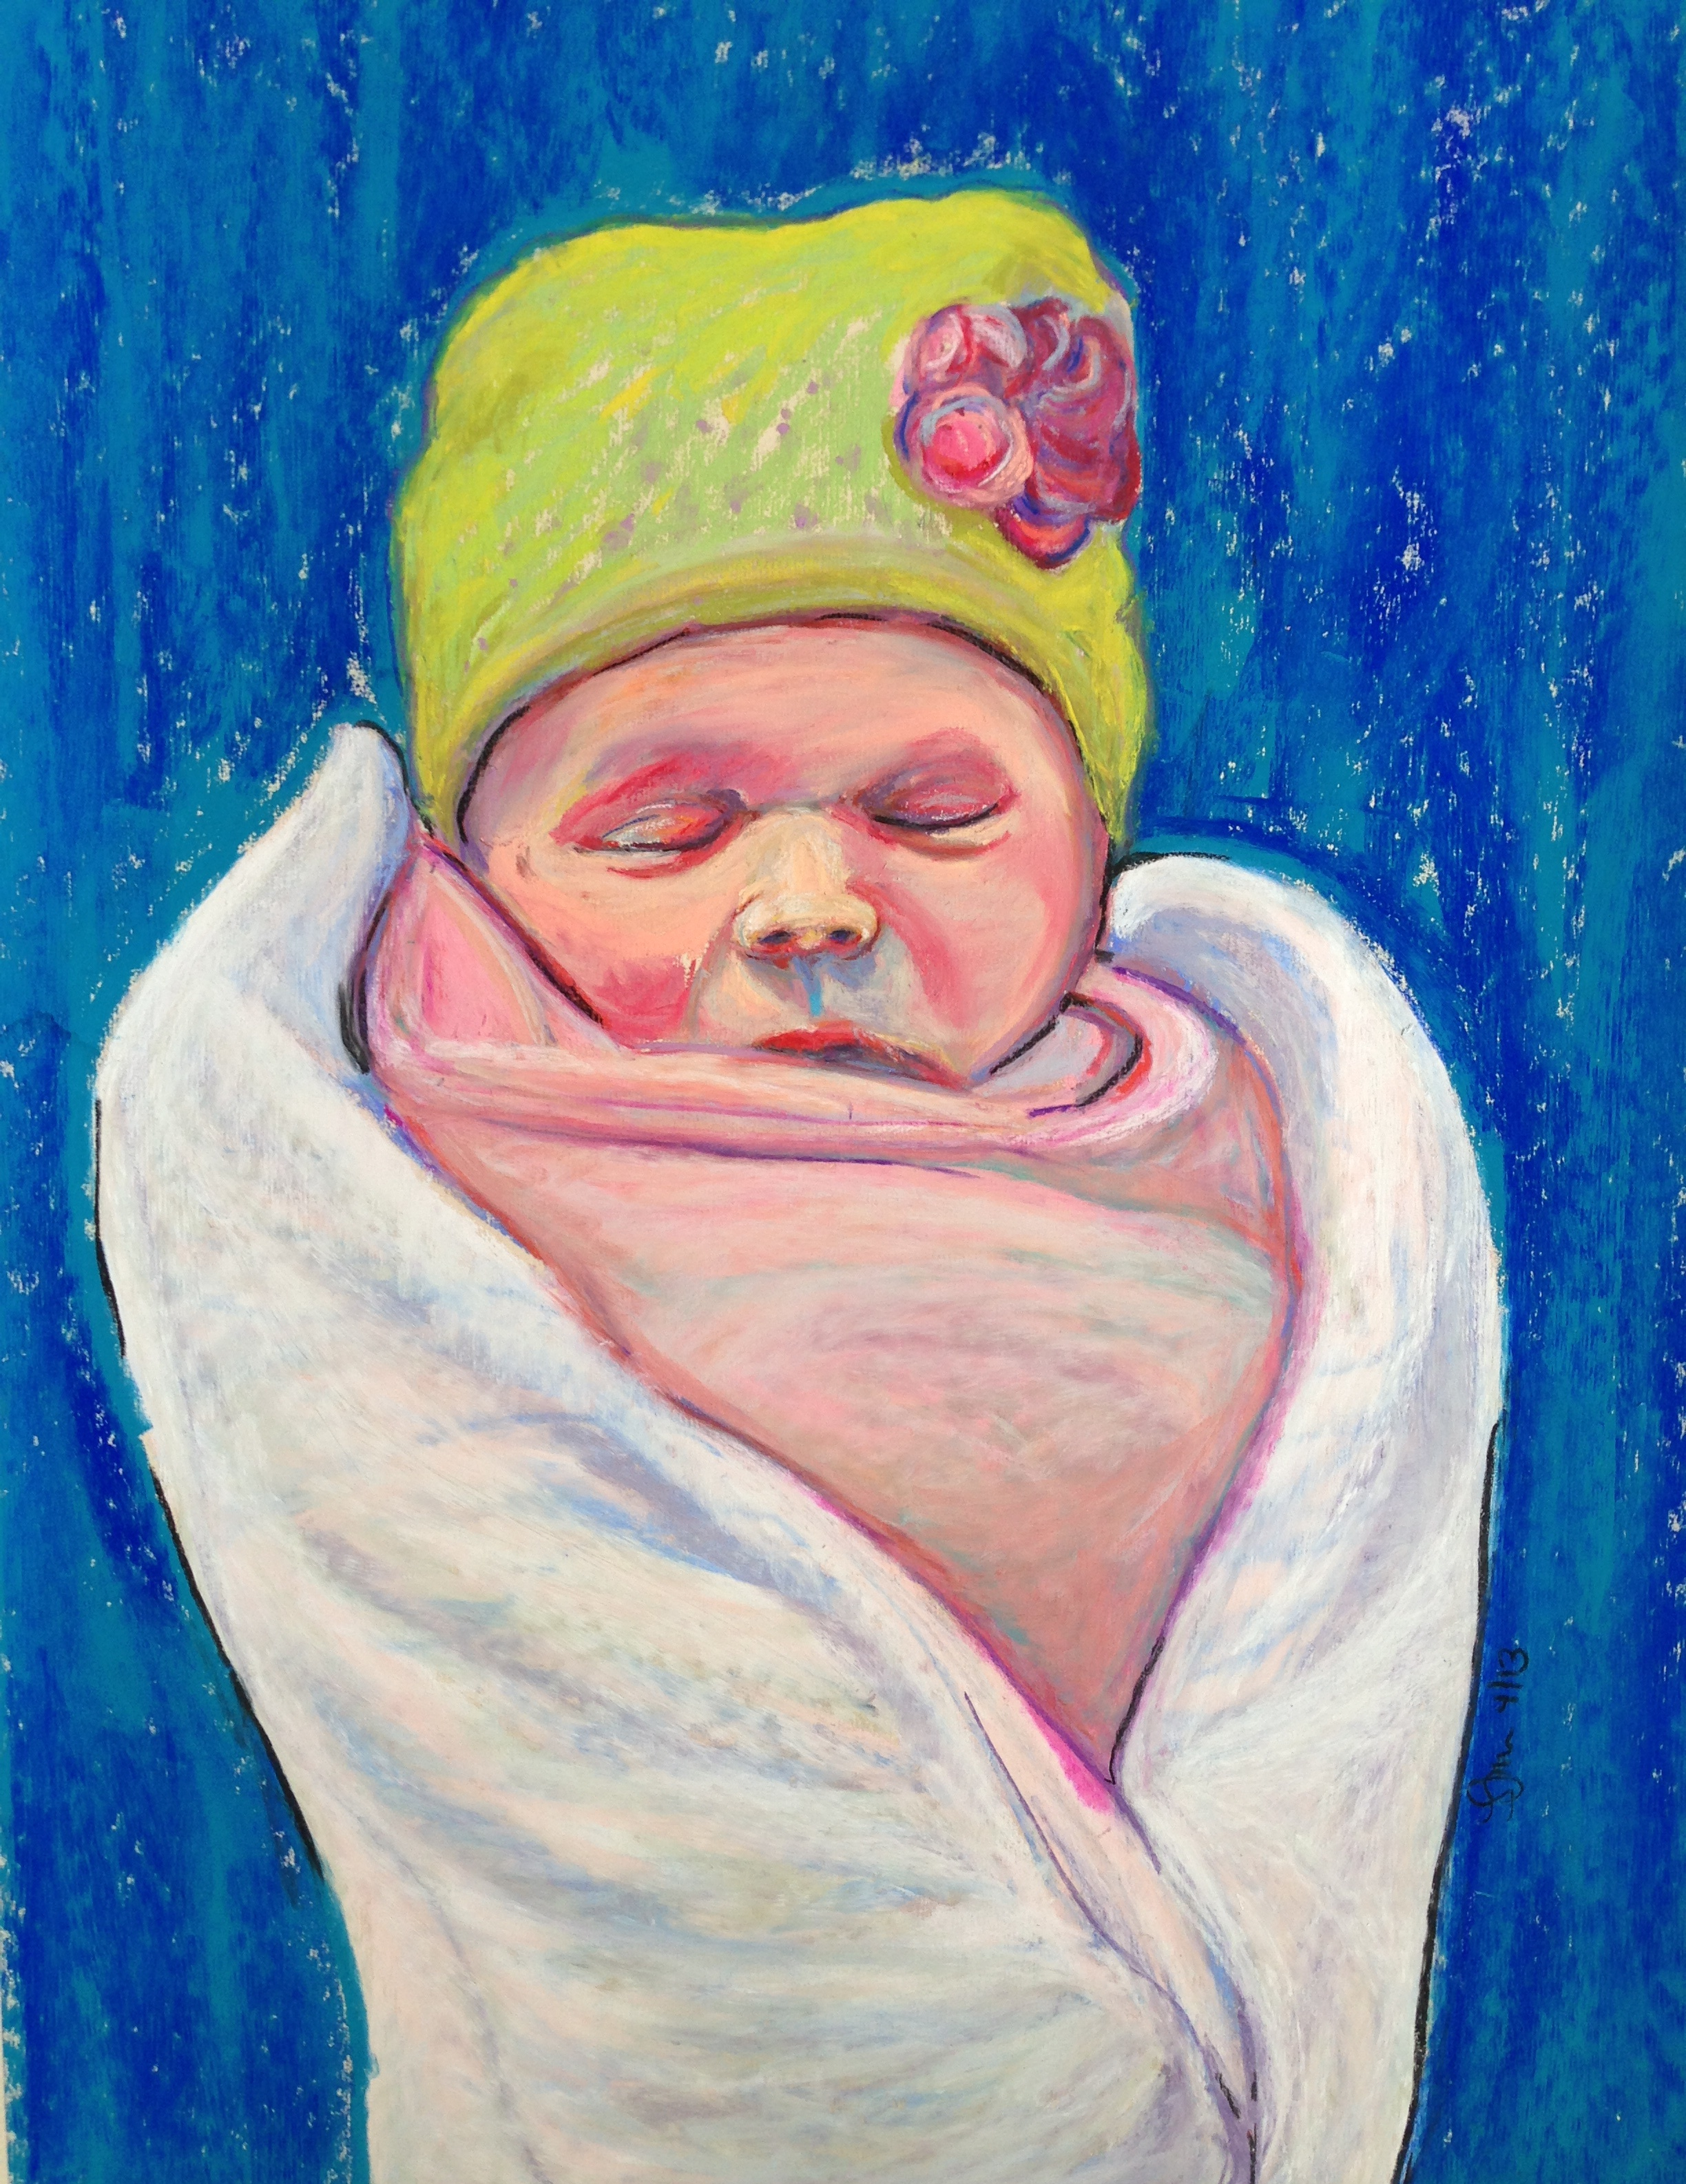 Gift Idea: portrait of loved one